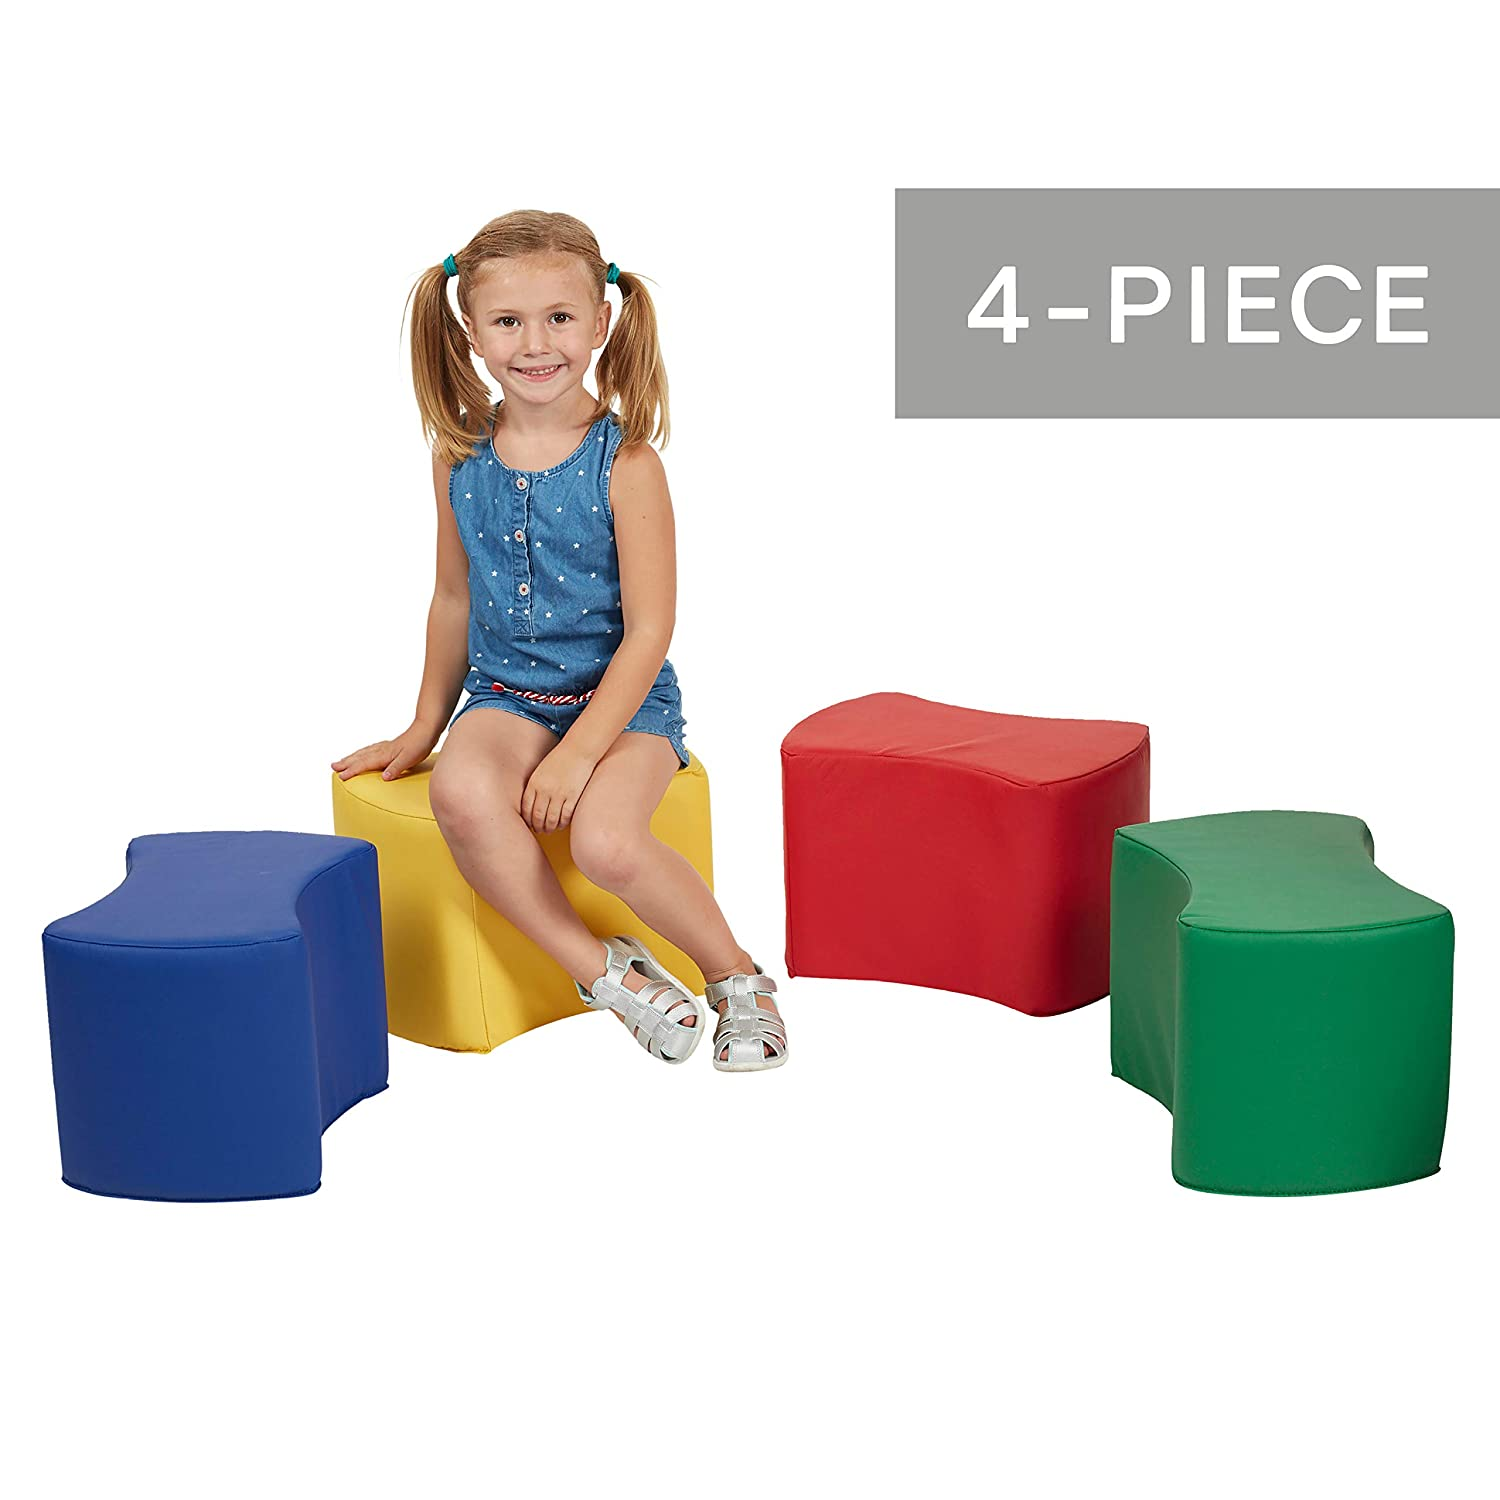 FDP SoftScape 12 inch Butterfly Stool Modular Foam Seating Set for Kids Home - Contemporary Colorful Flexible Seating for Classrooms 4-Piece Set Libraries